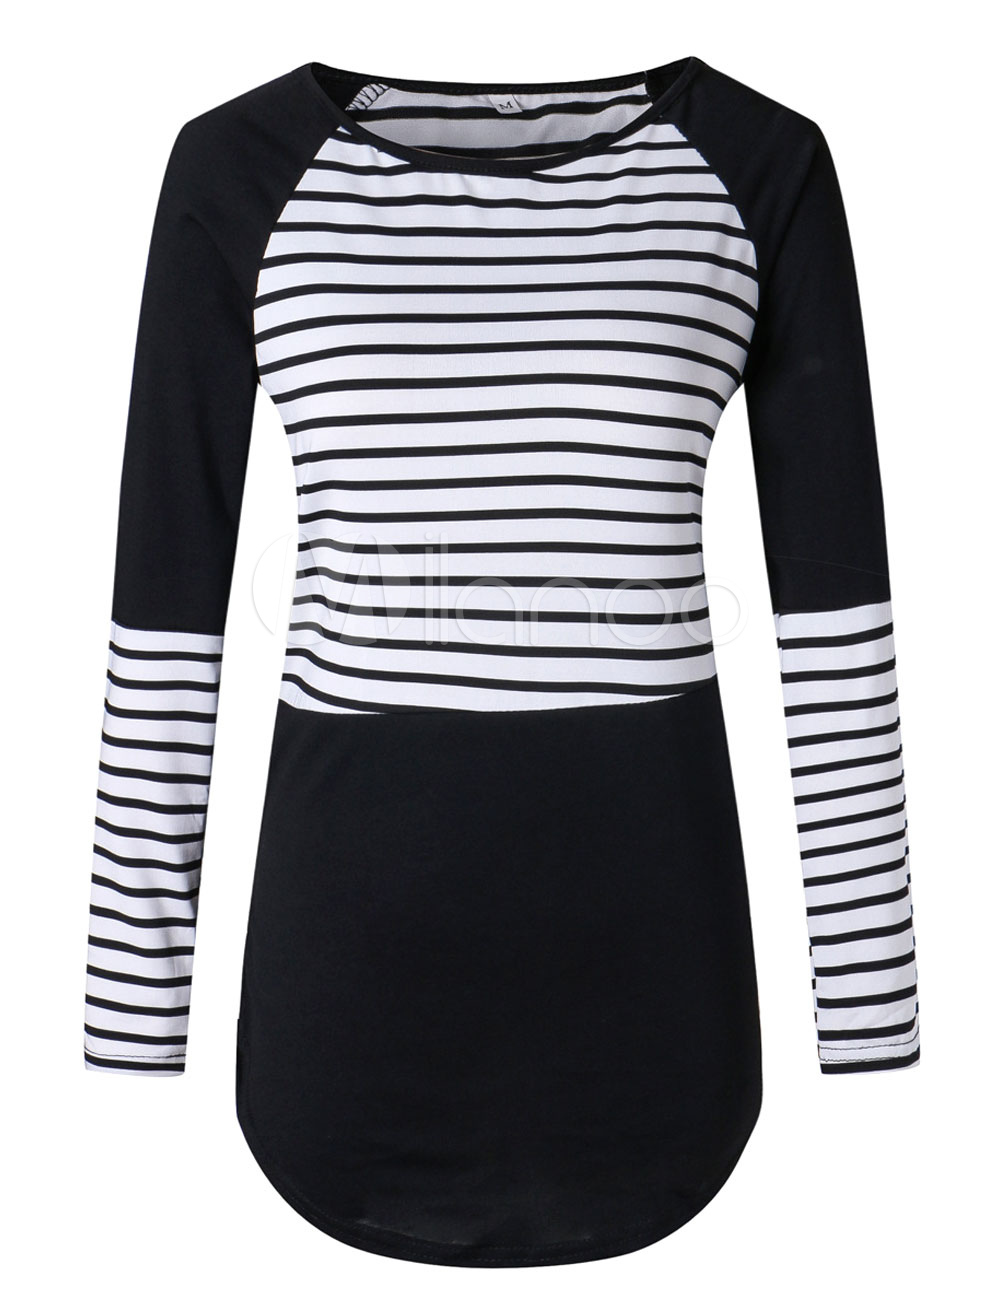 5a1d67a5a57 Womens Black And White Thick Striped Shirt - raveitsafe